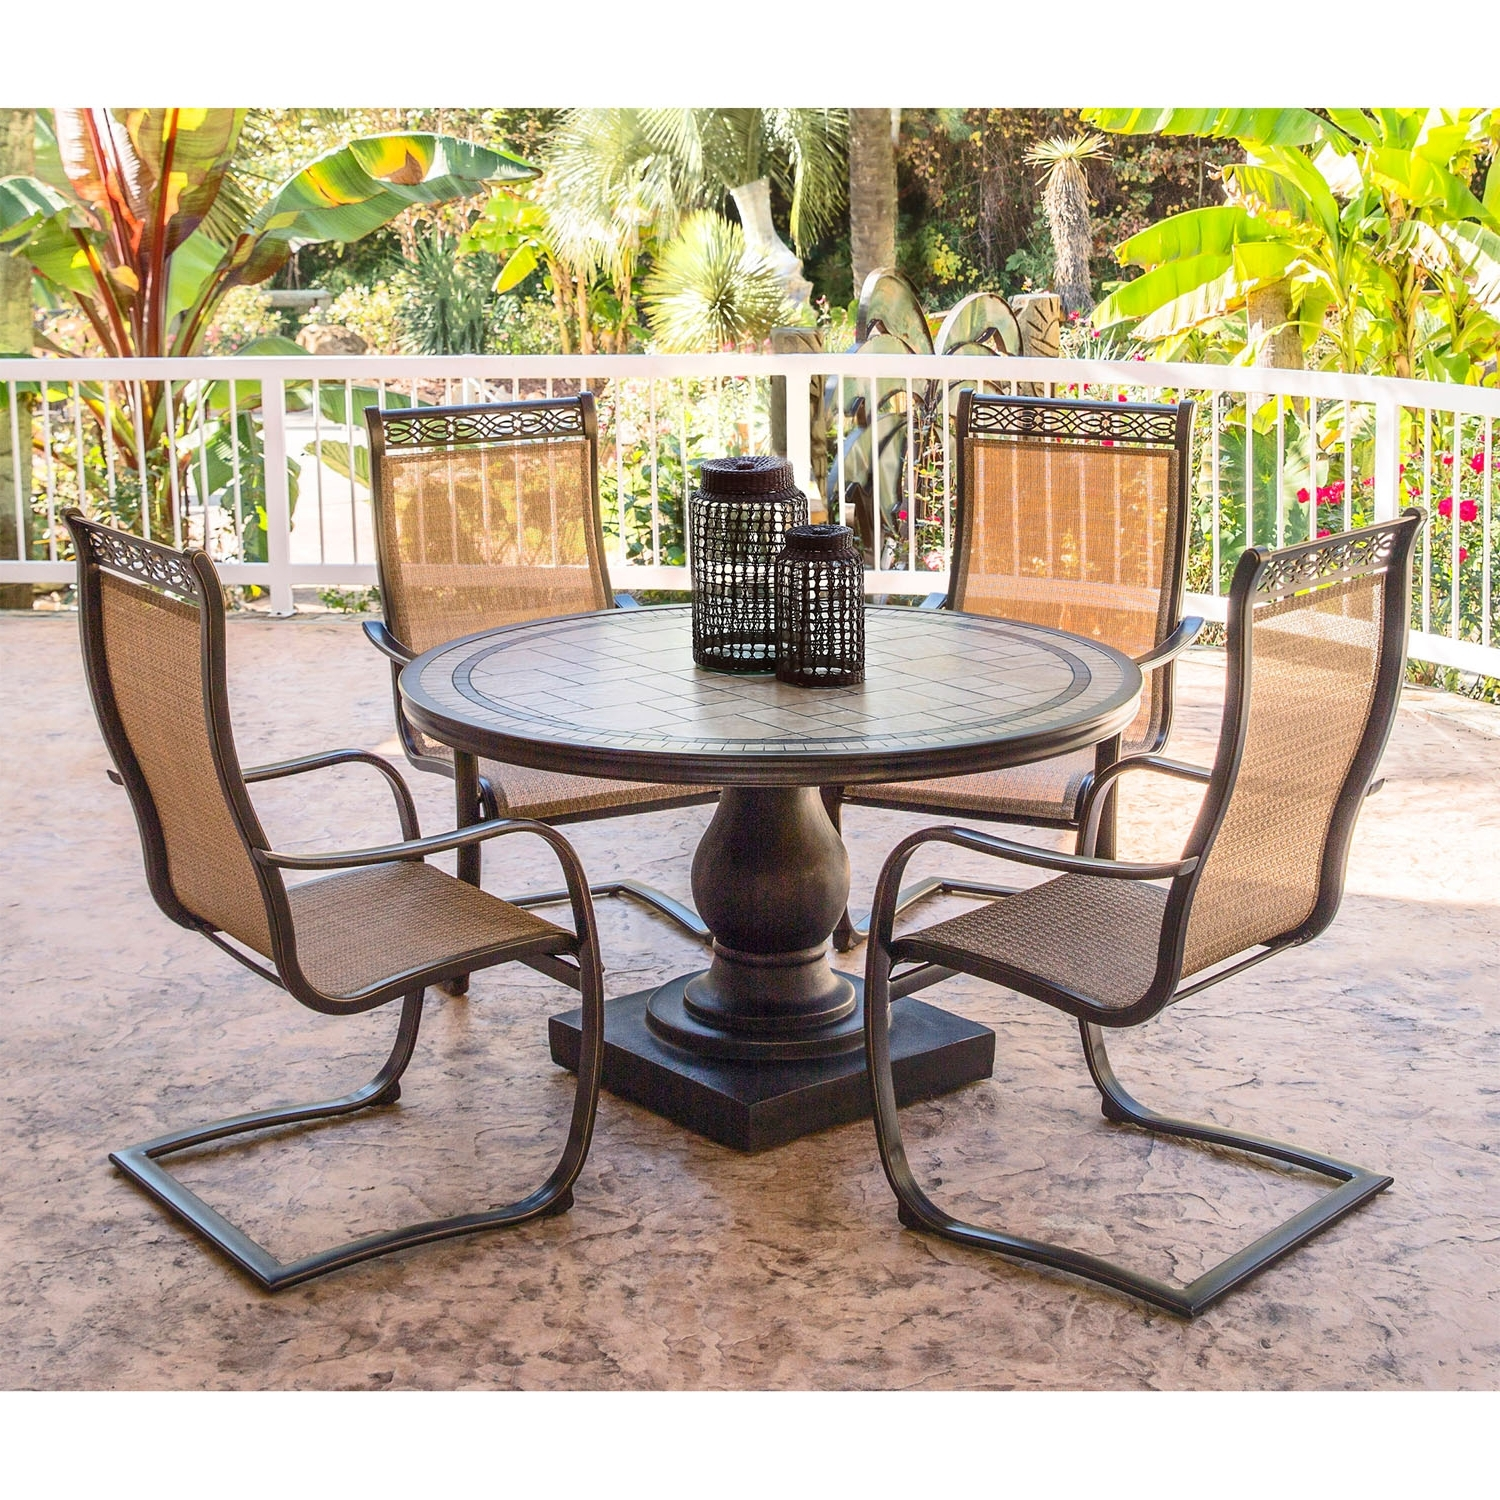 Newest Monaco Dining Tables Regarding Monaco 5 Piece Outdoor Dining Set With C Spring Chairs And Tile Top (Gallery 12 of 25)